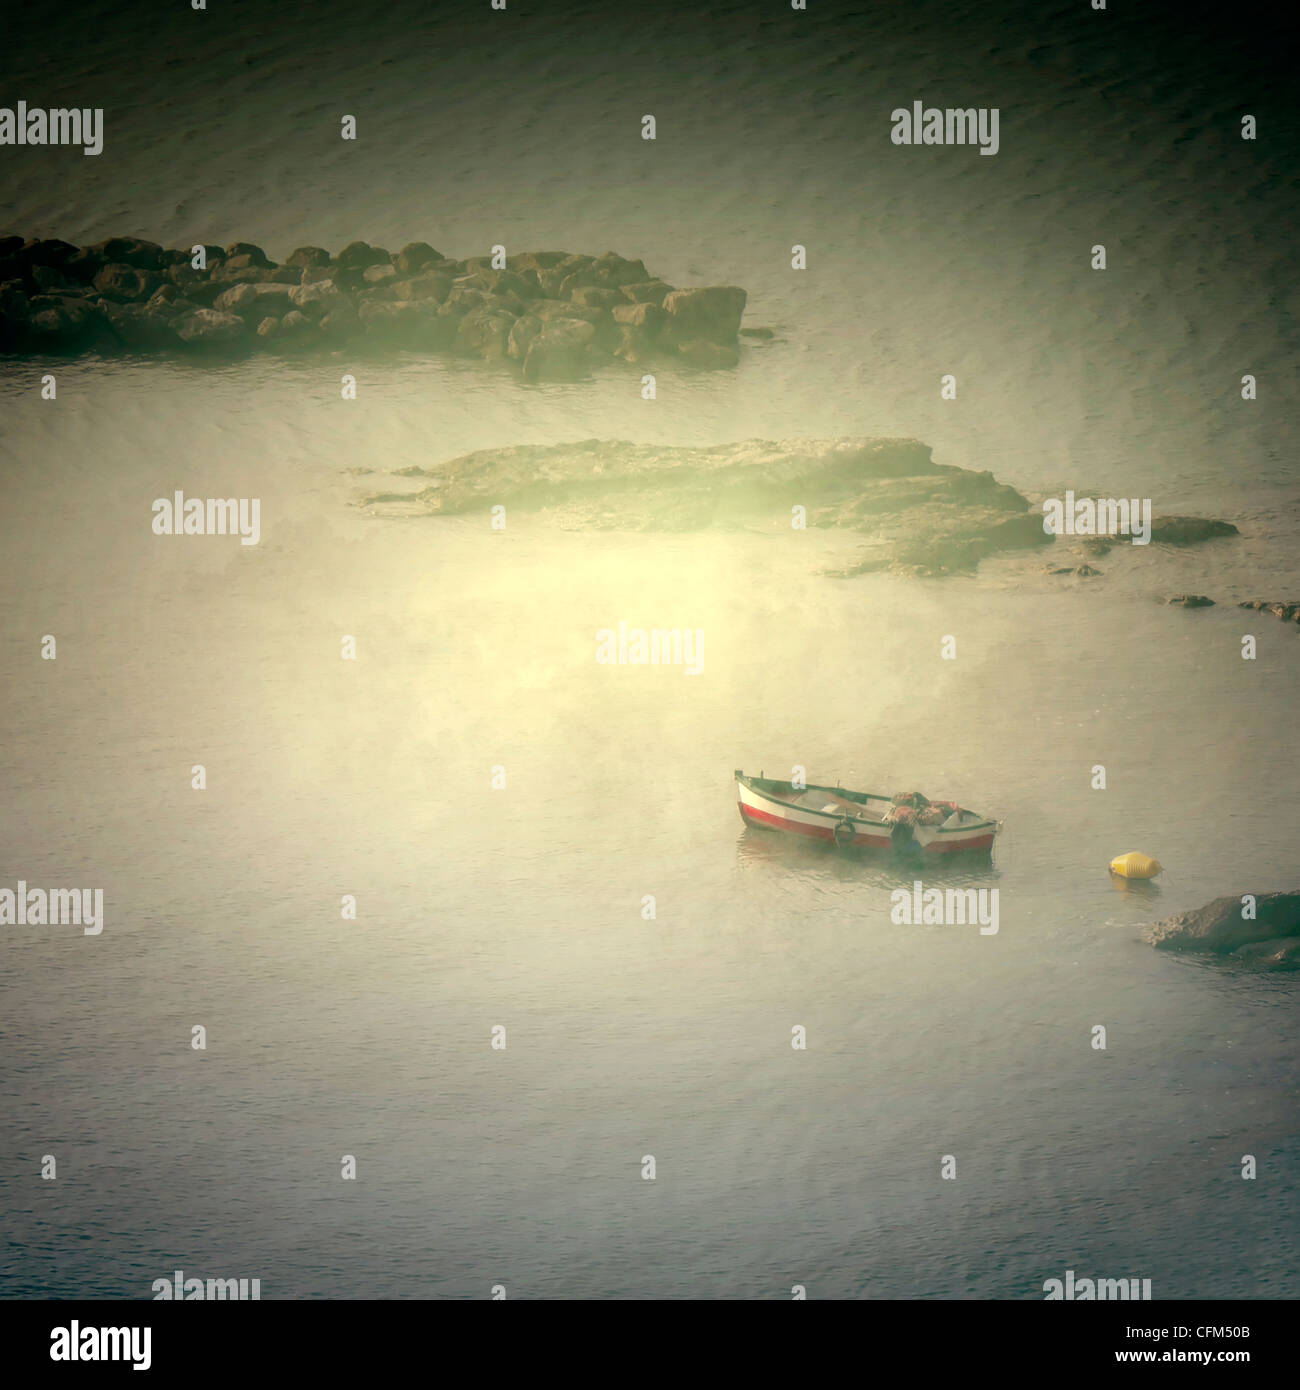 small fishing boat in a bay - Stock Image